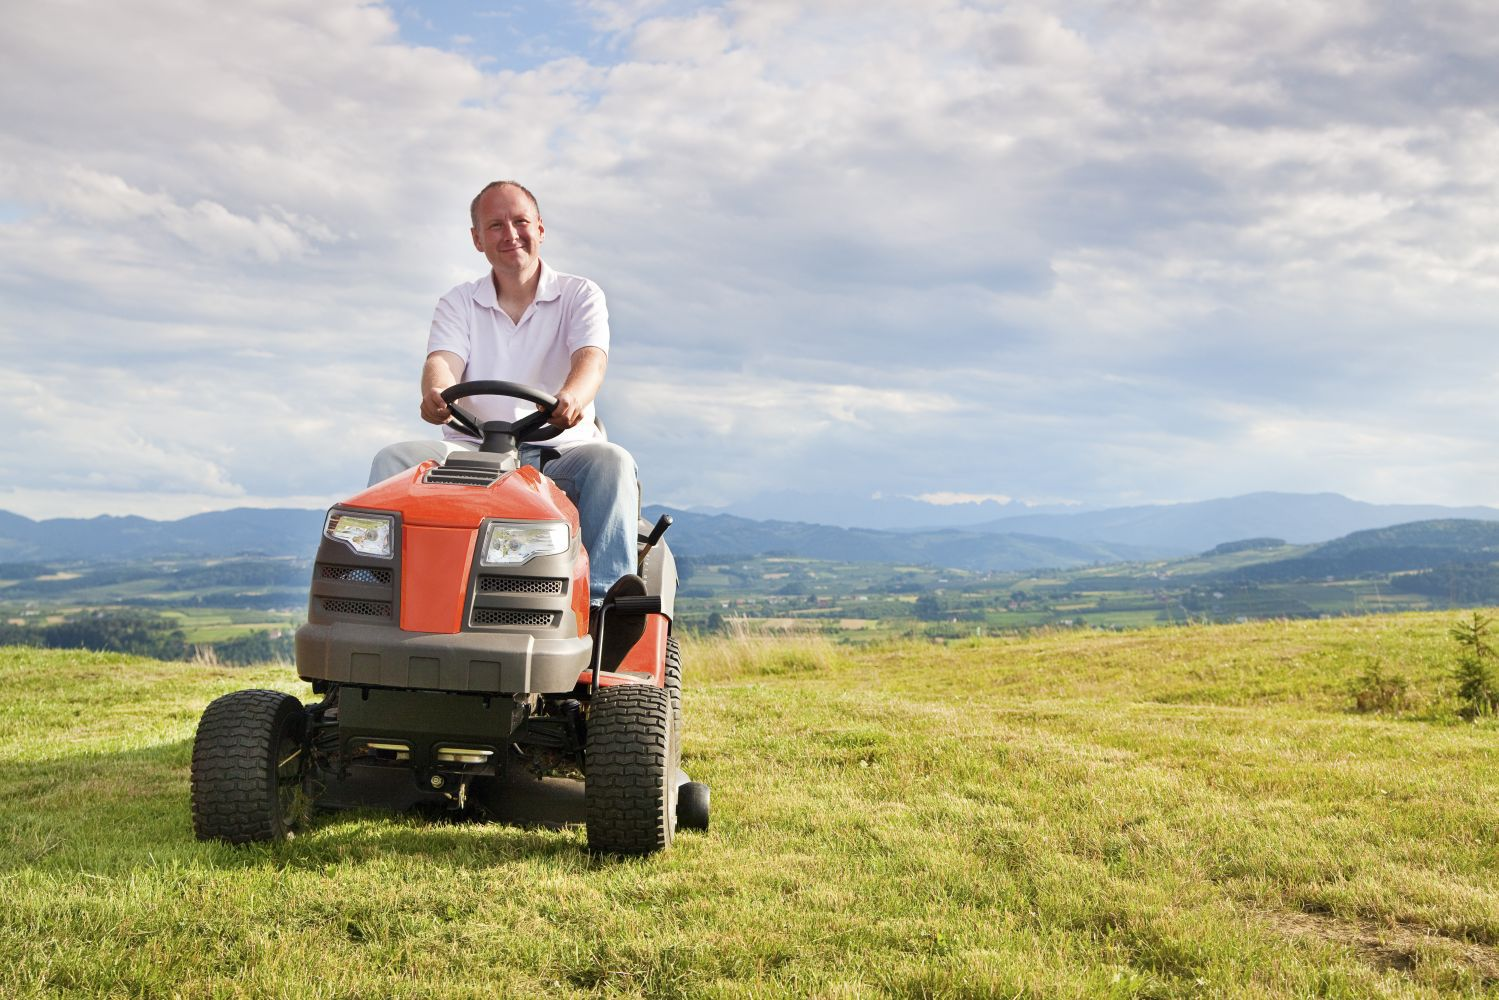 Man working after ride on mower repairs in Green Island